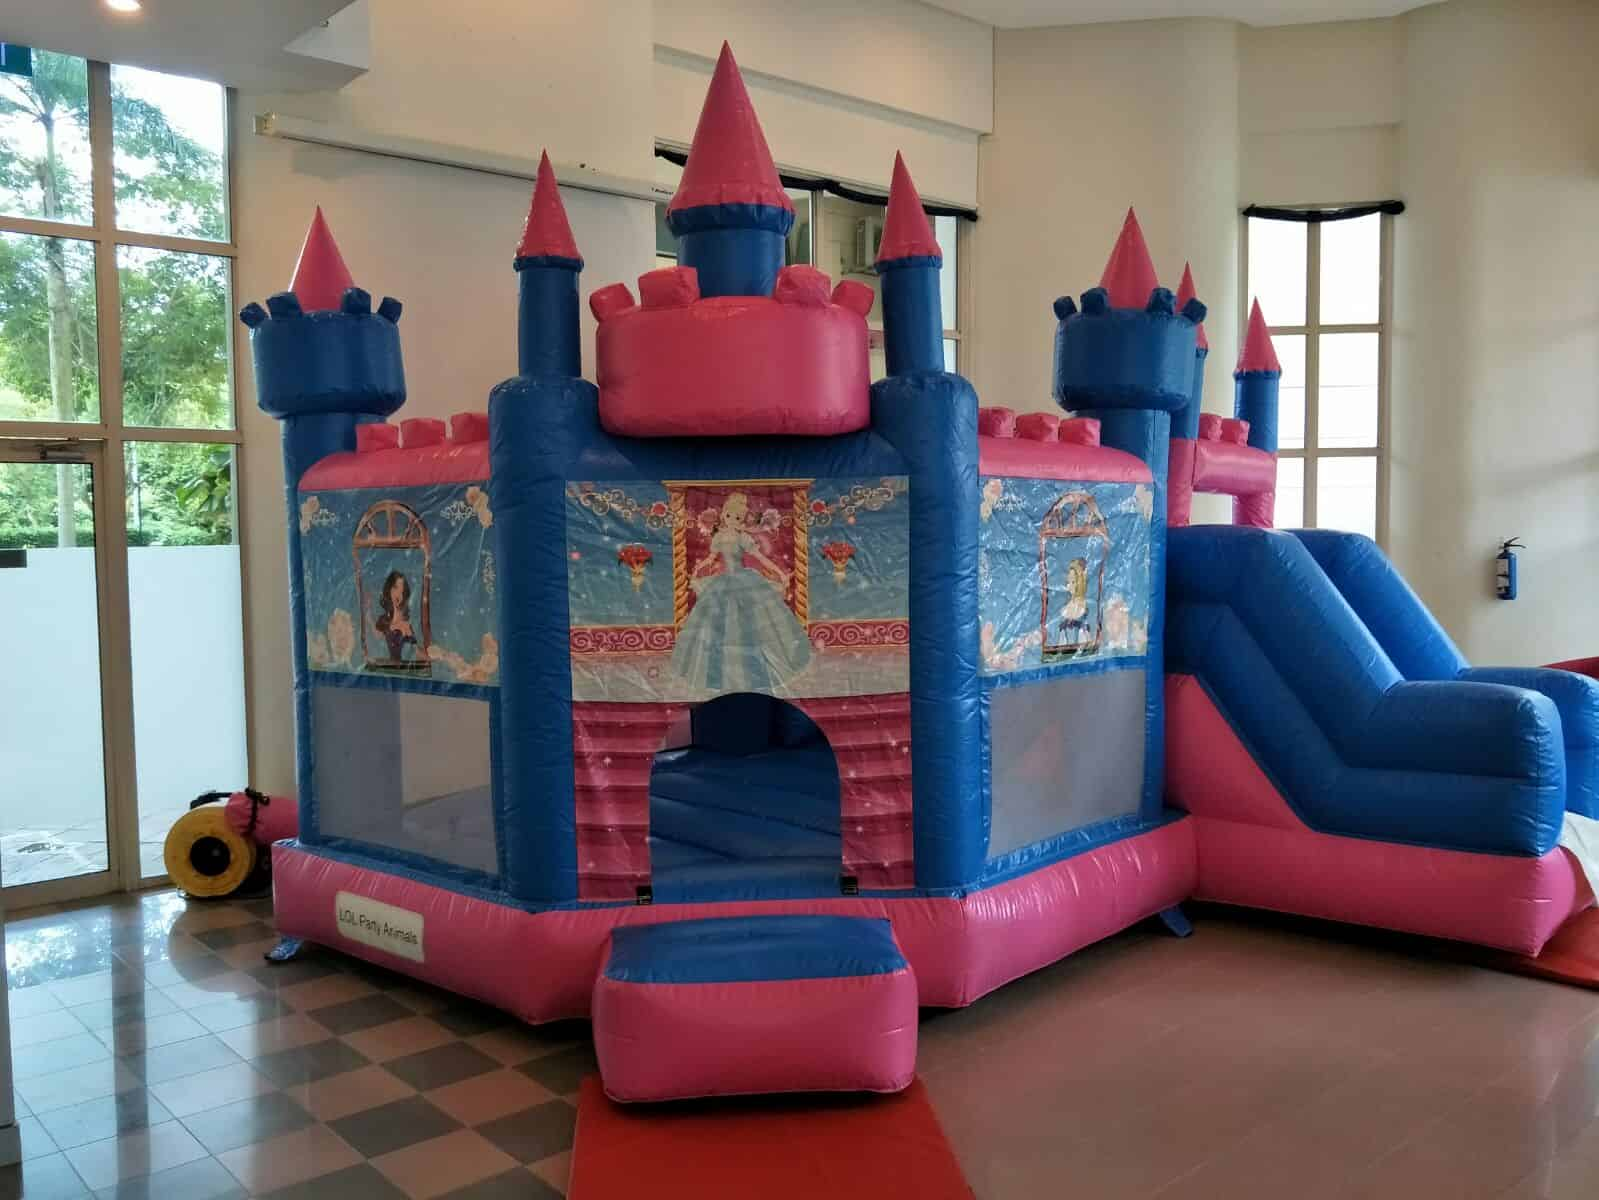 Princess Fortress Bouncer